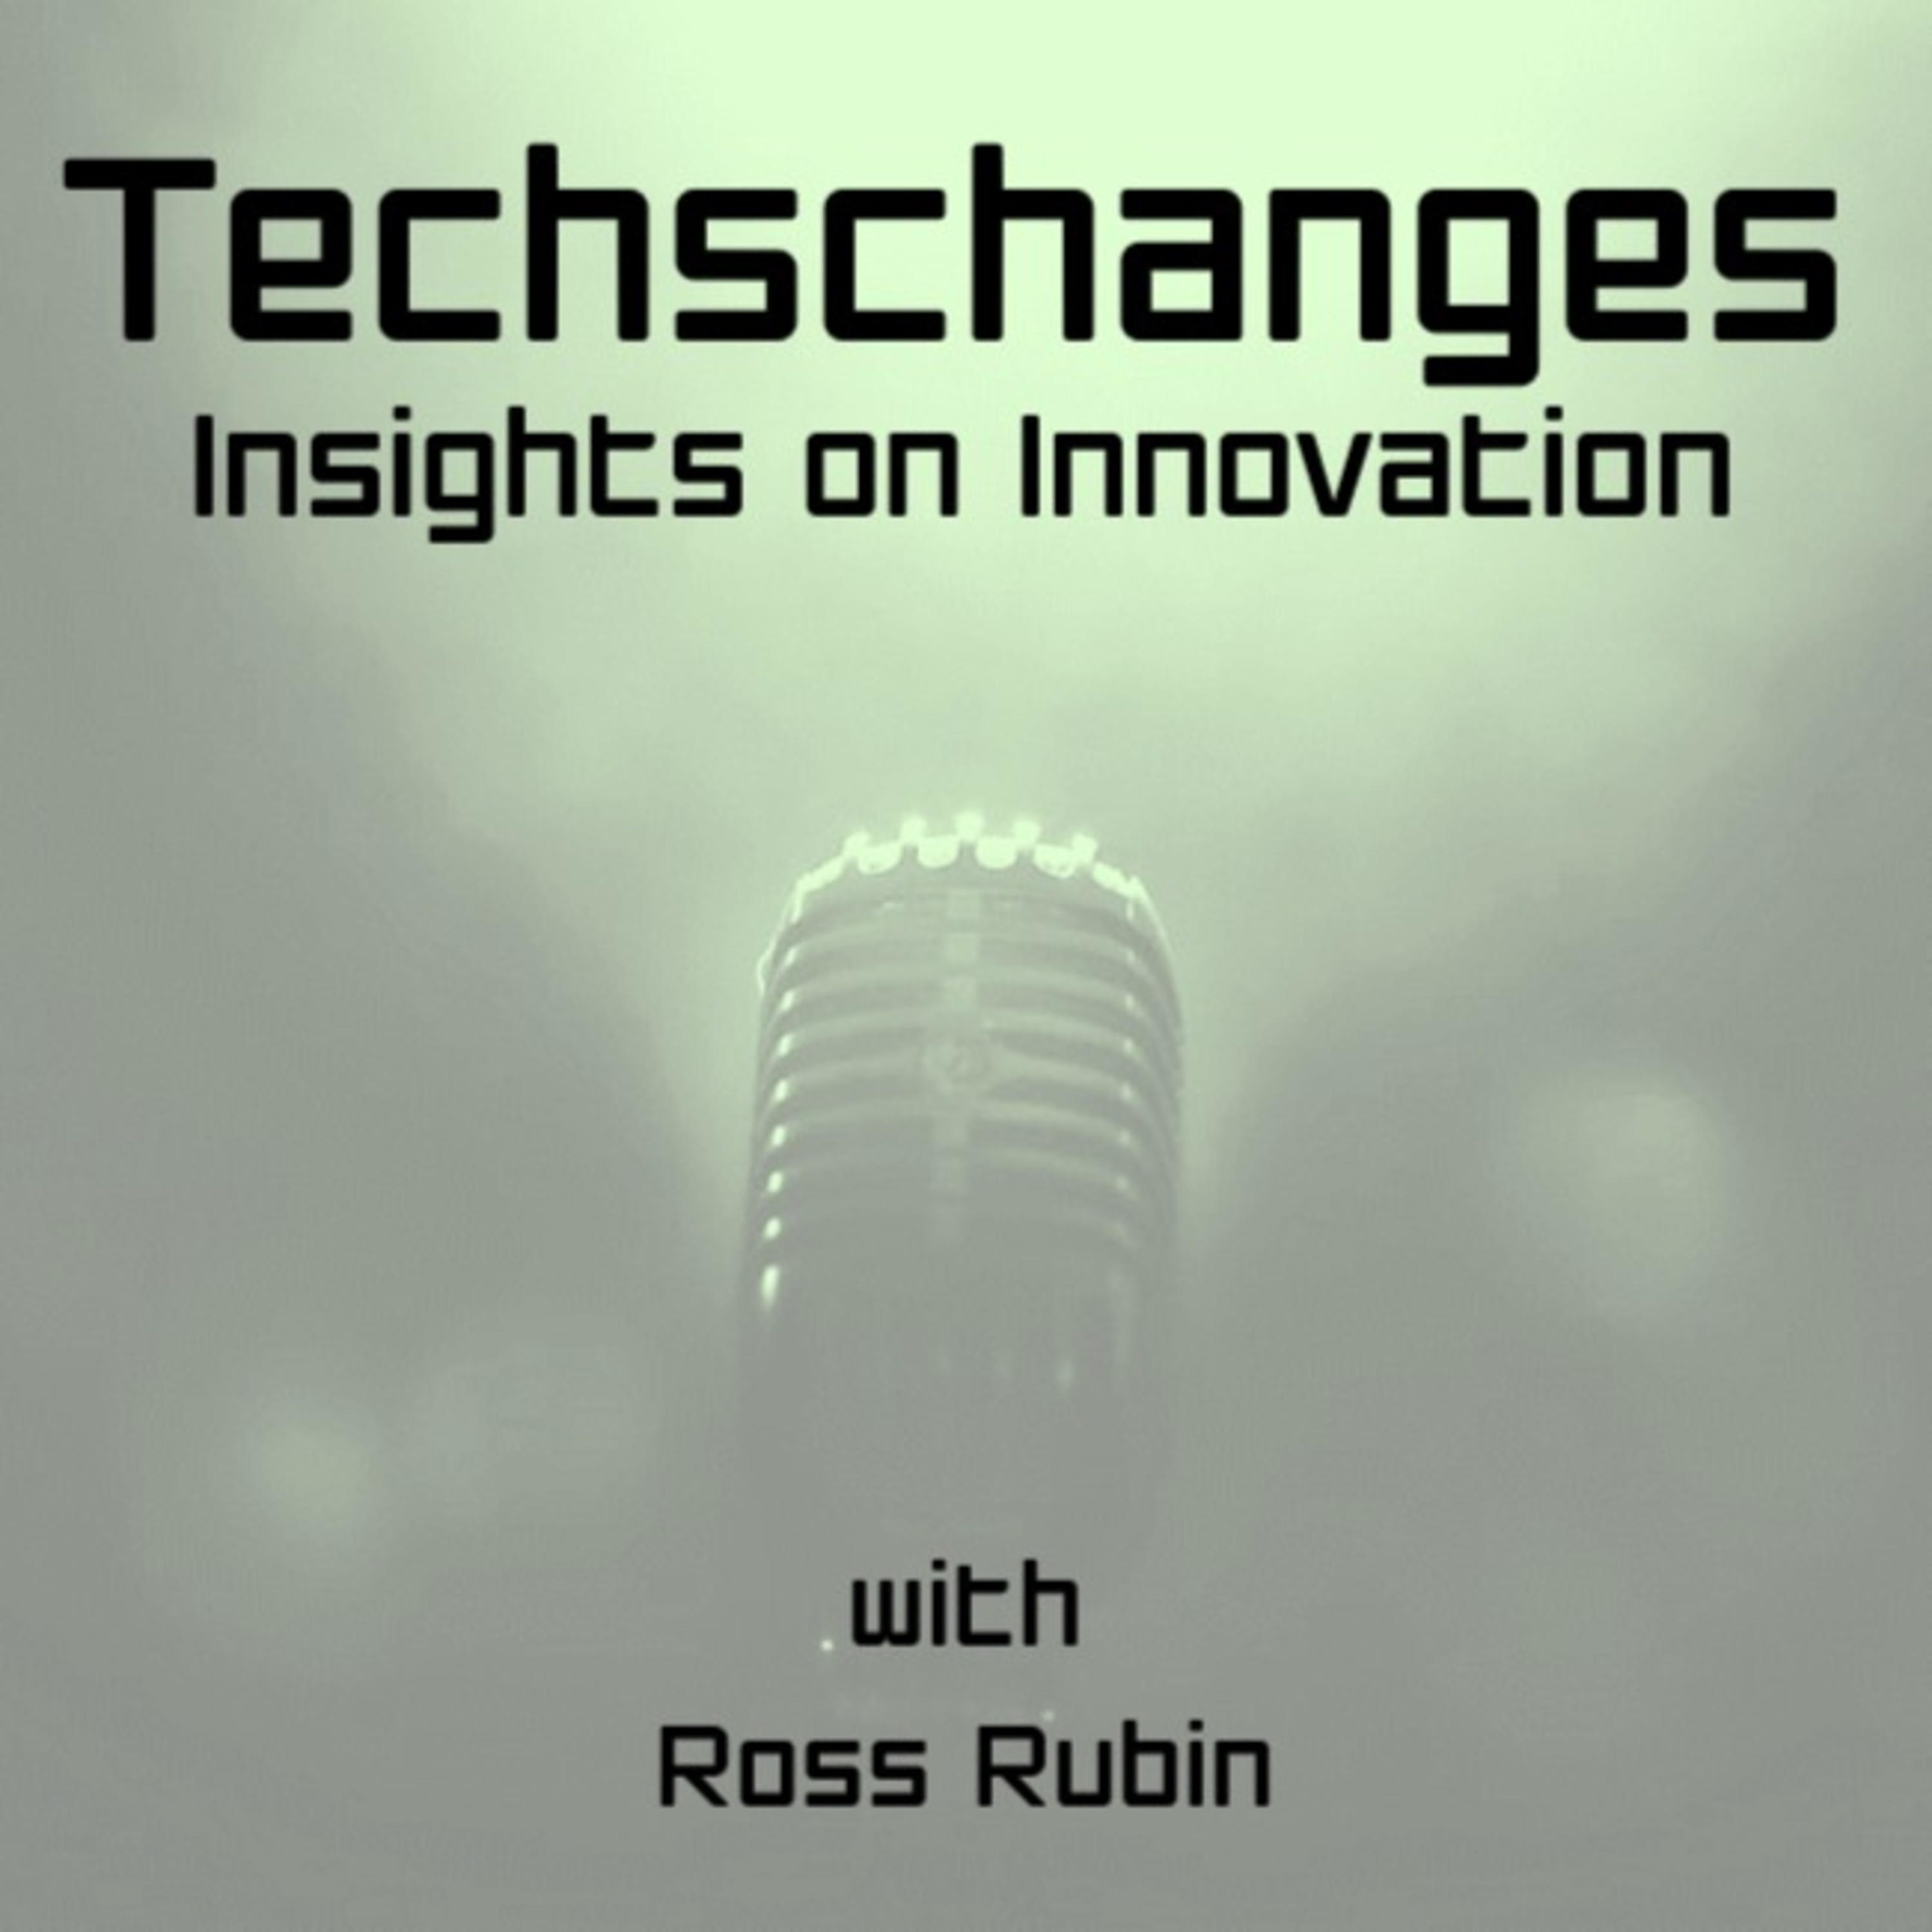 Techschanges: Insights on Innovation